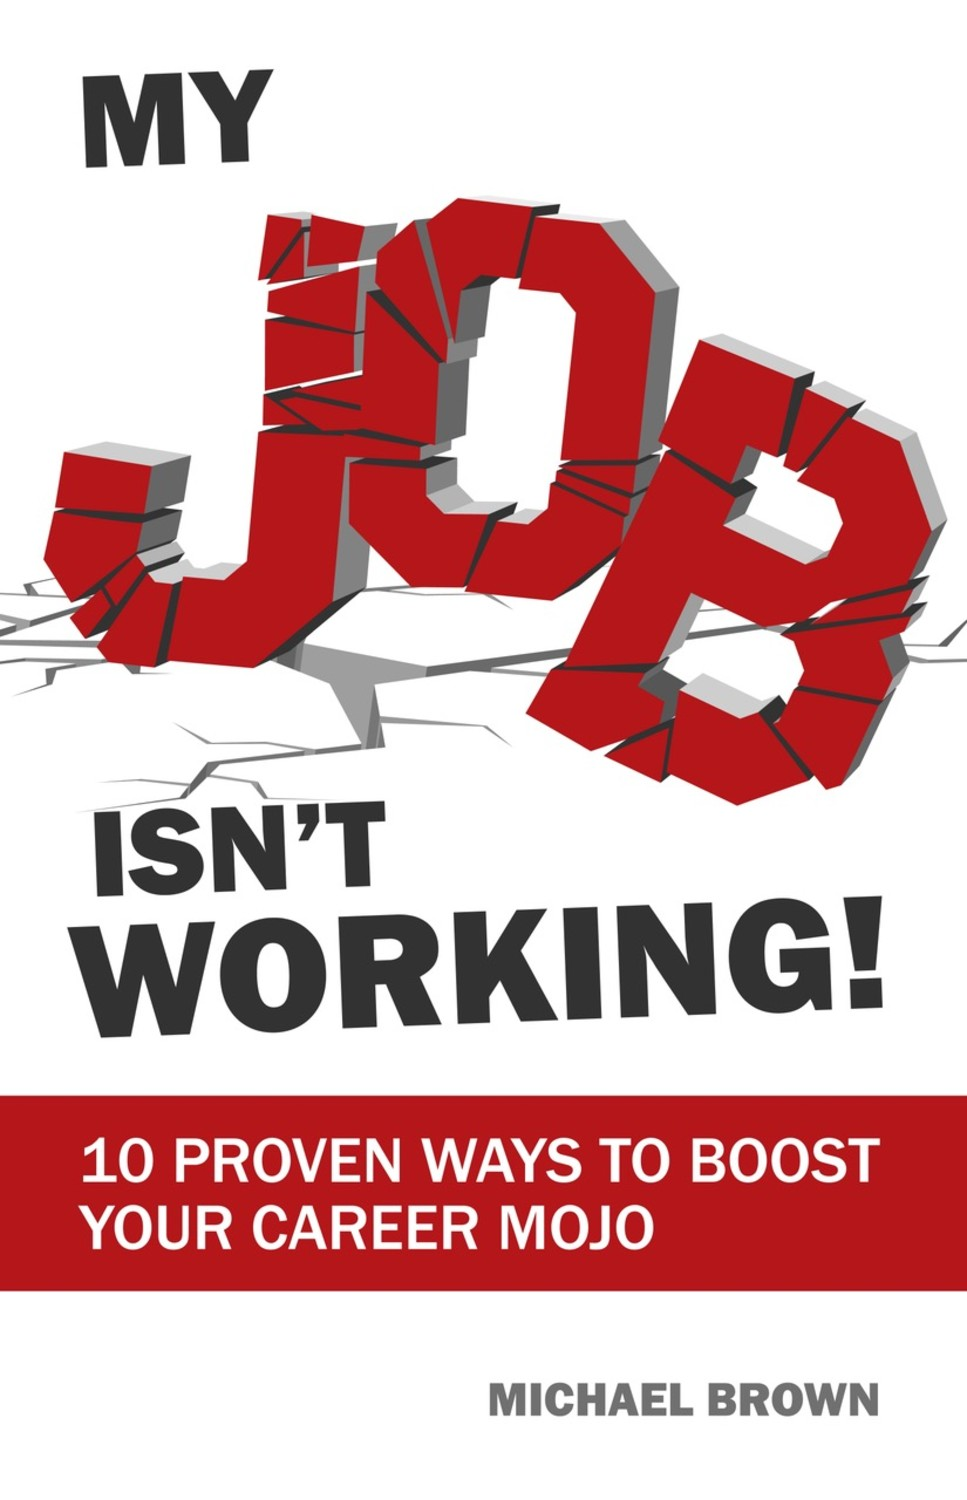 Book cover for My Job Isn't Working!:  10 proven ways to boost your career mojo a book by Michael  Brown